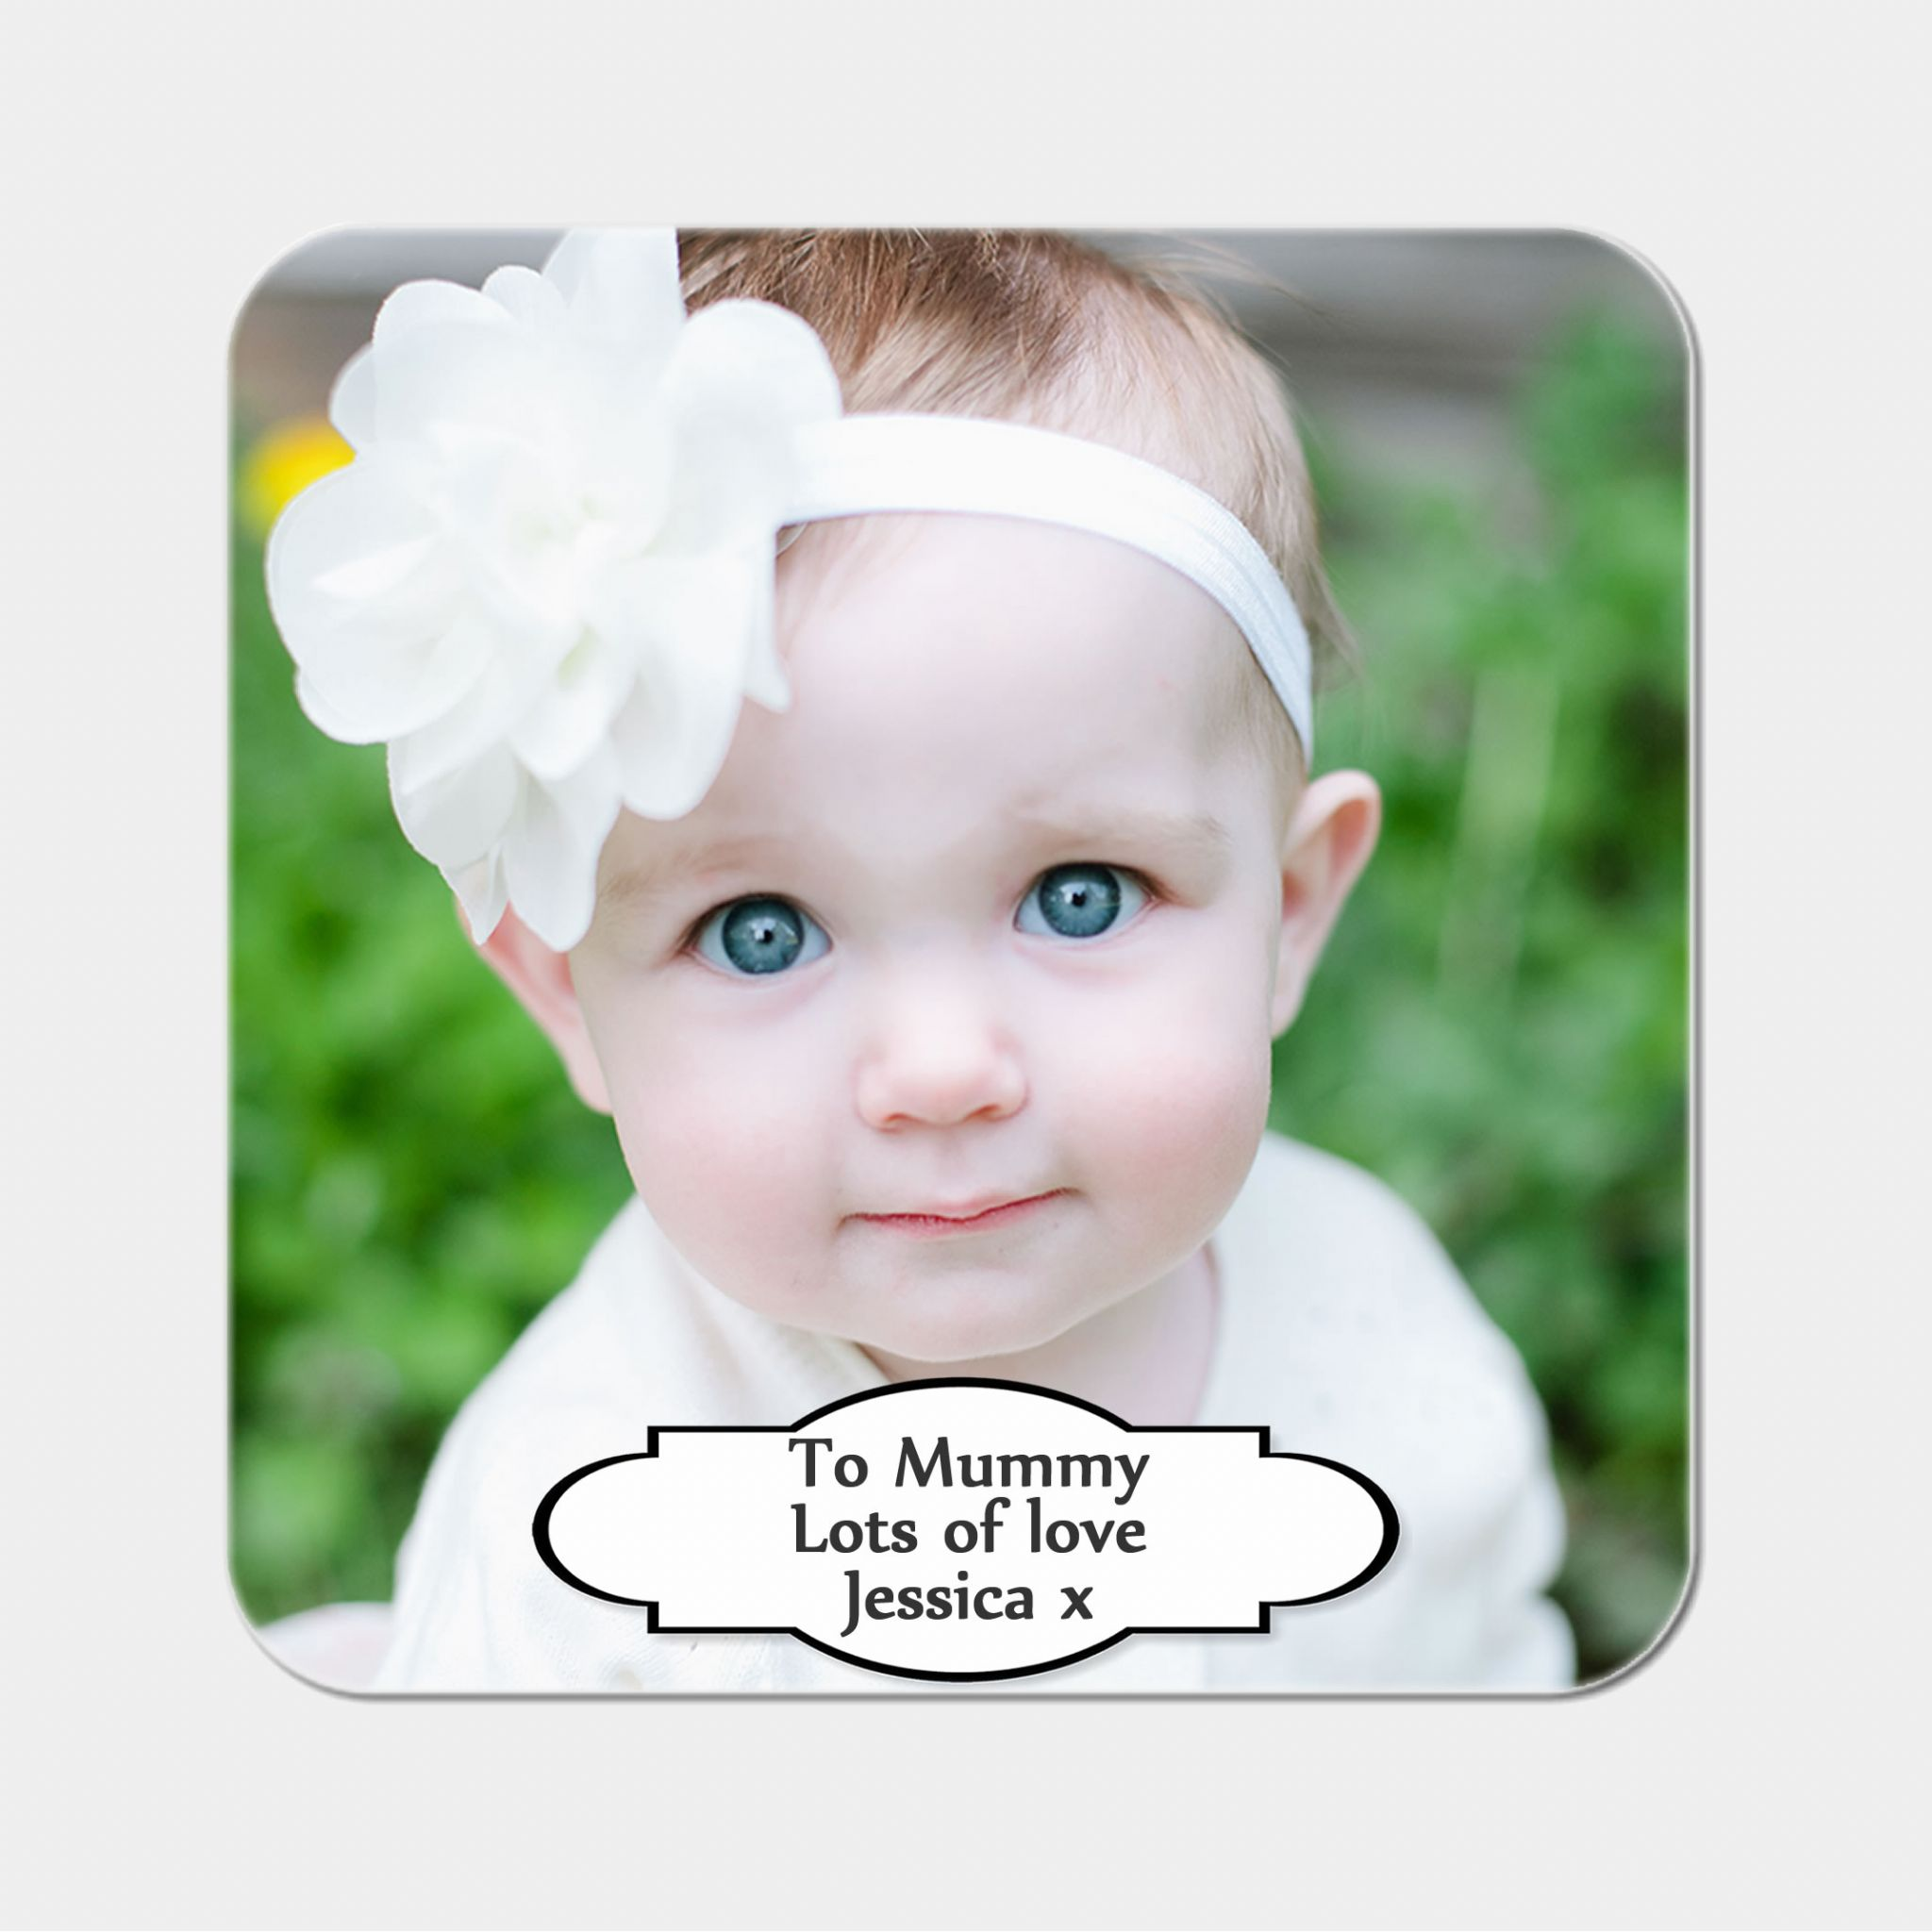 Little Gifts With Love - Personalised Round Drink Coaster Add Any Photo or Image + Free Delivery